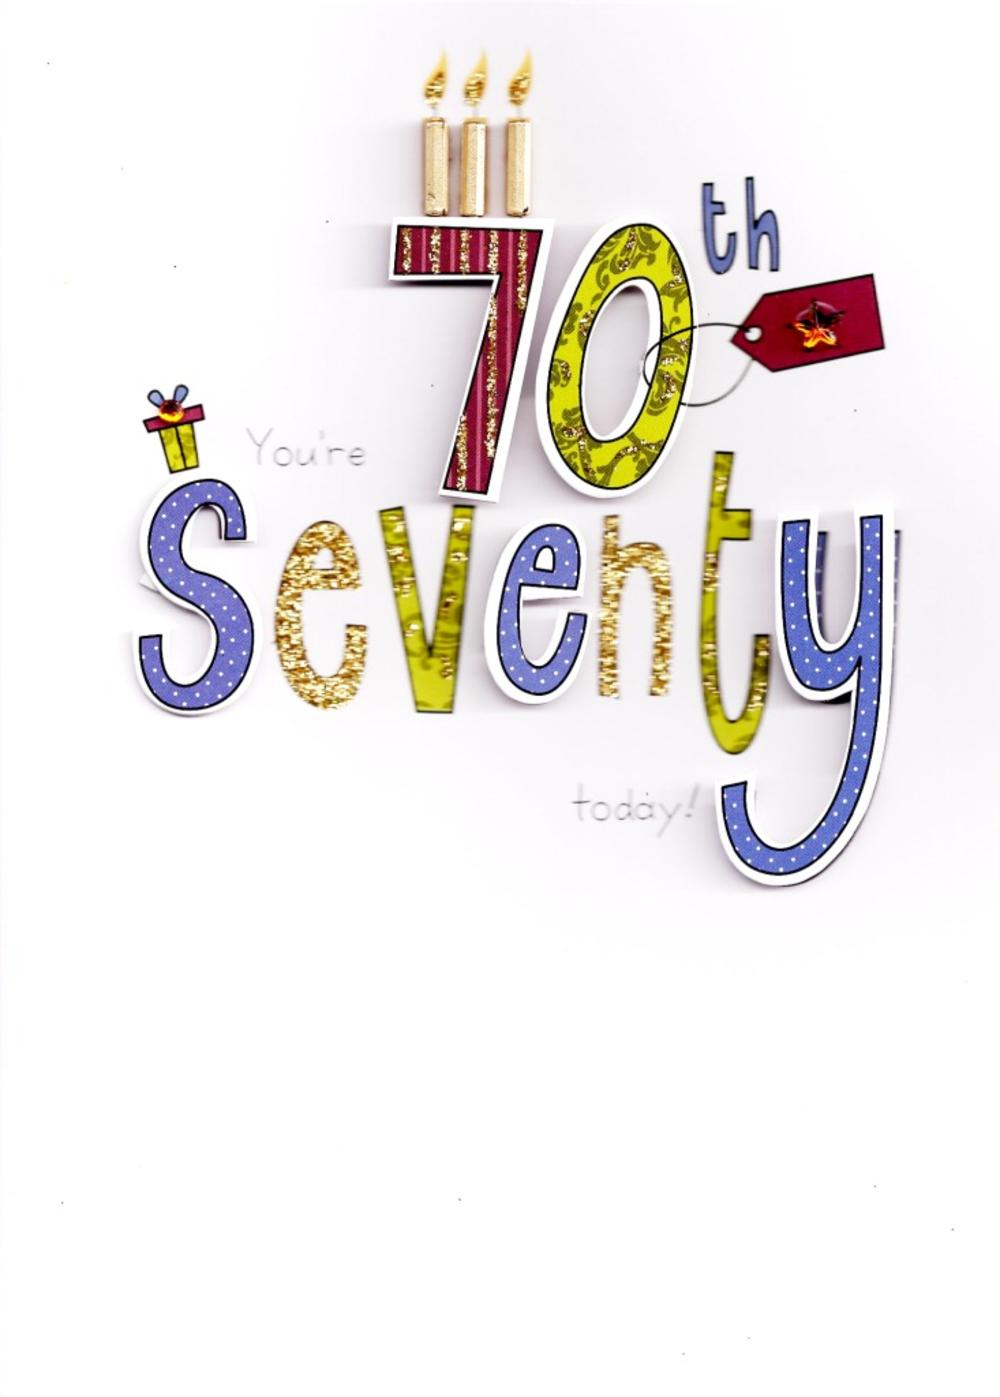 70th Birthday Handcrafted Special Greeting Card Cards